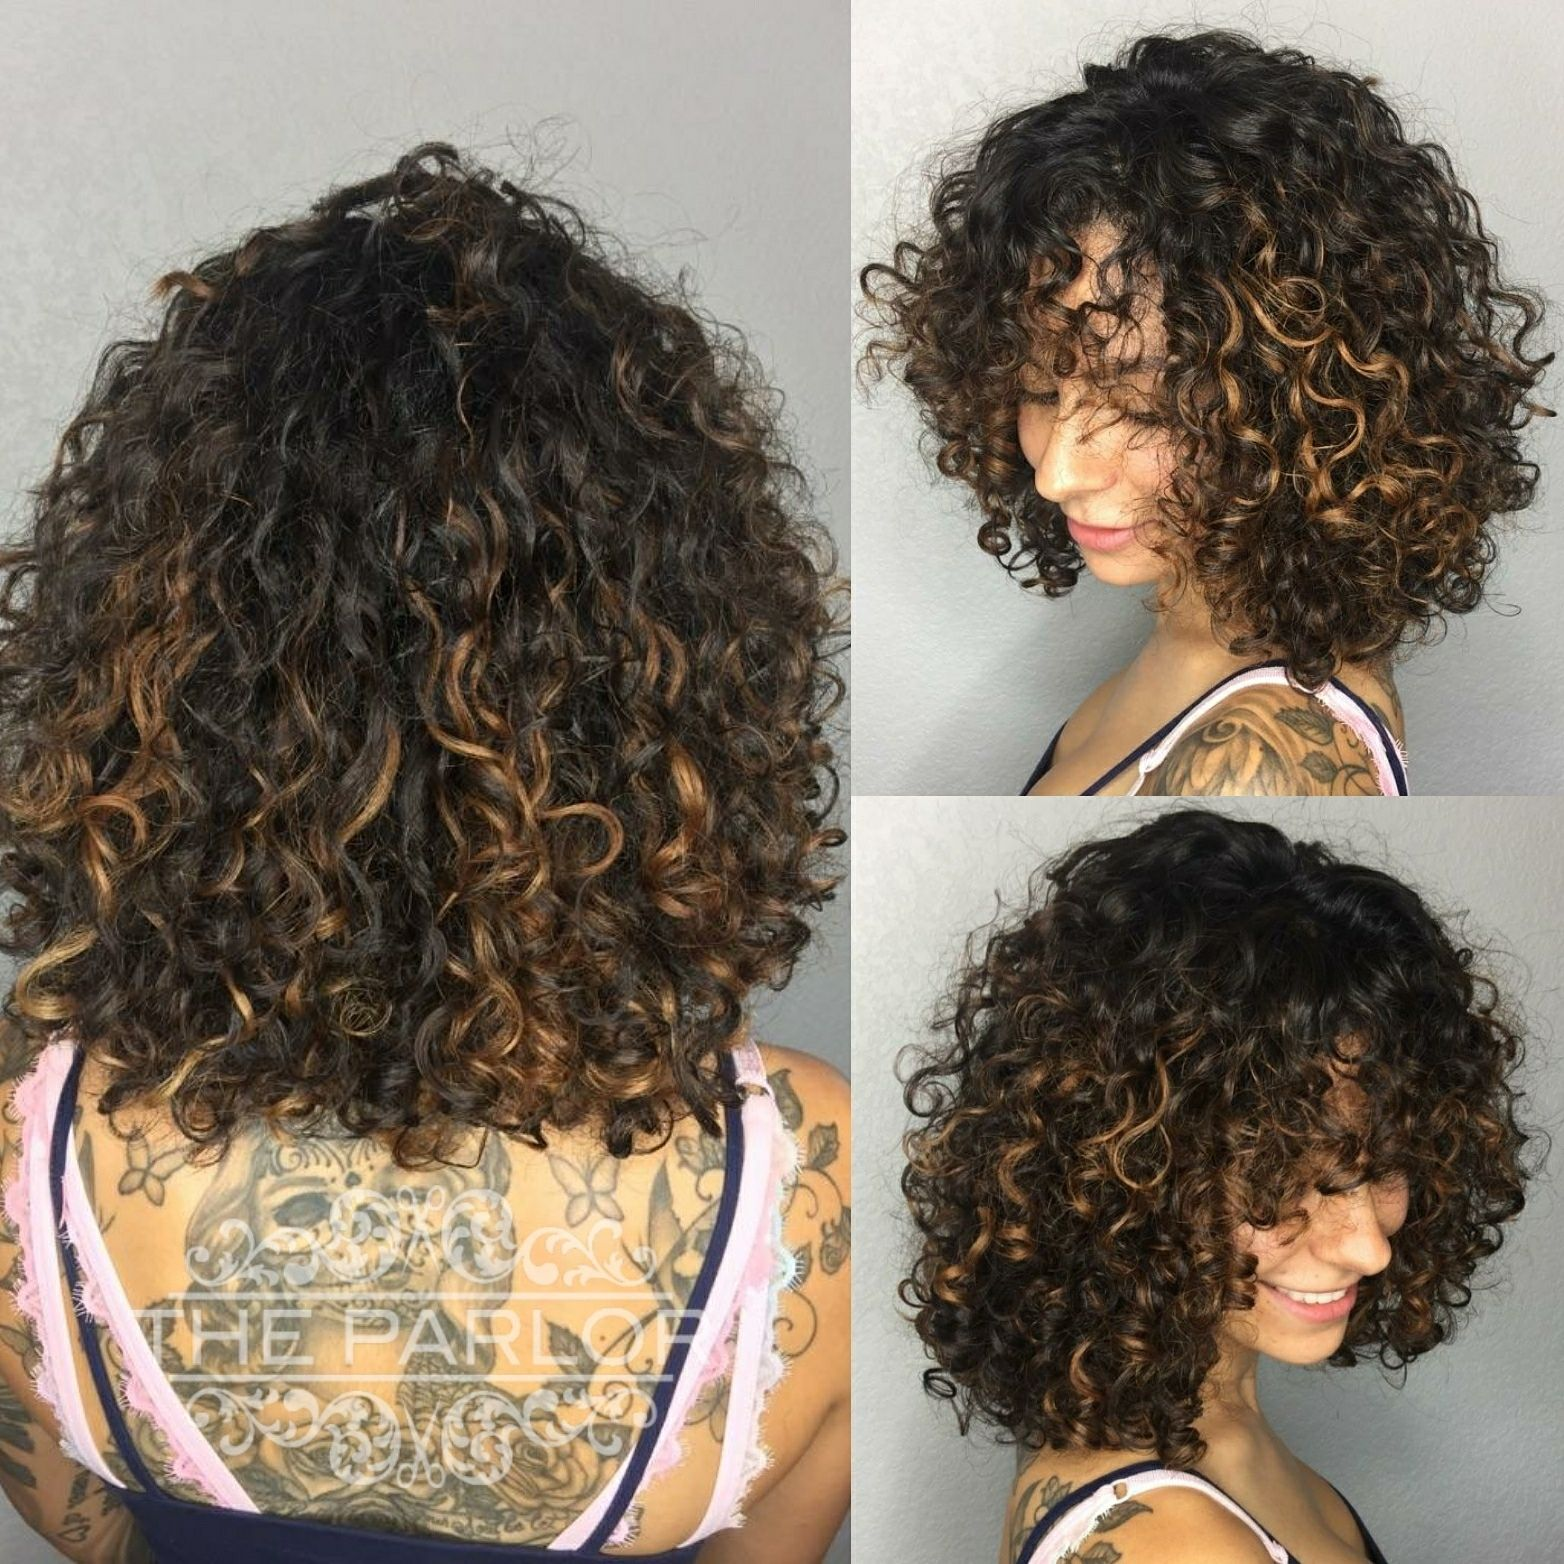 Dc44ee6b206774f78fa12d247ba06e02 Short Curly Afro Short Afro Hairstyles Jpg 300 300 Pixels Curly Hair Styles Curly Hair Styles Naturally Natural Hair Styles